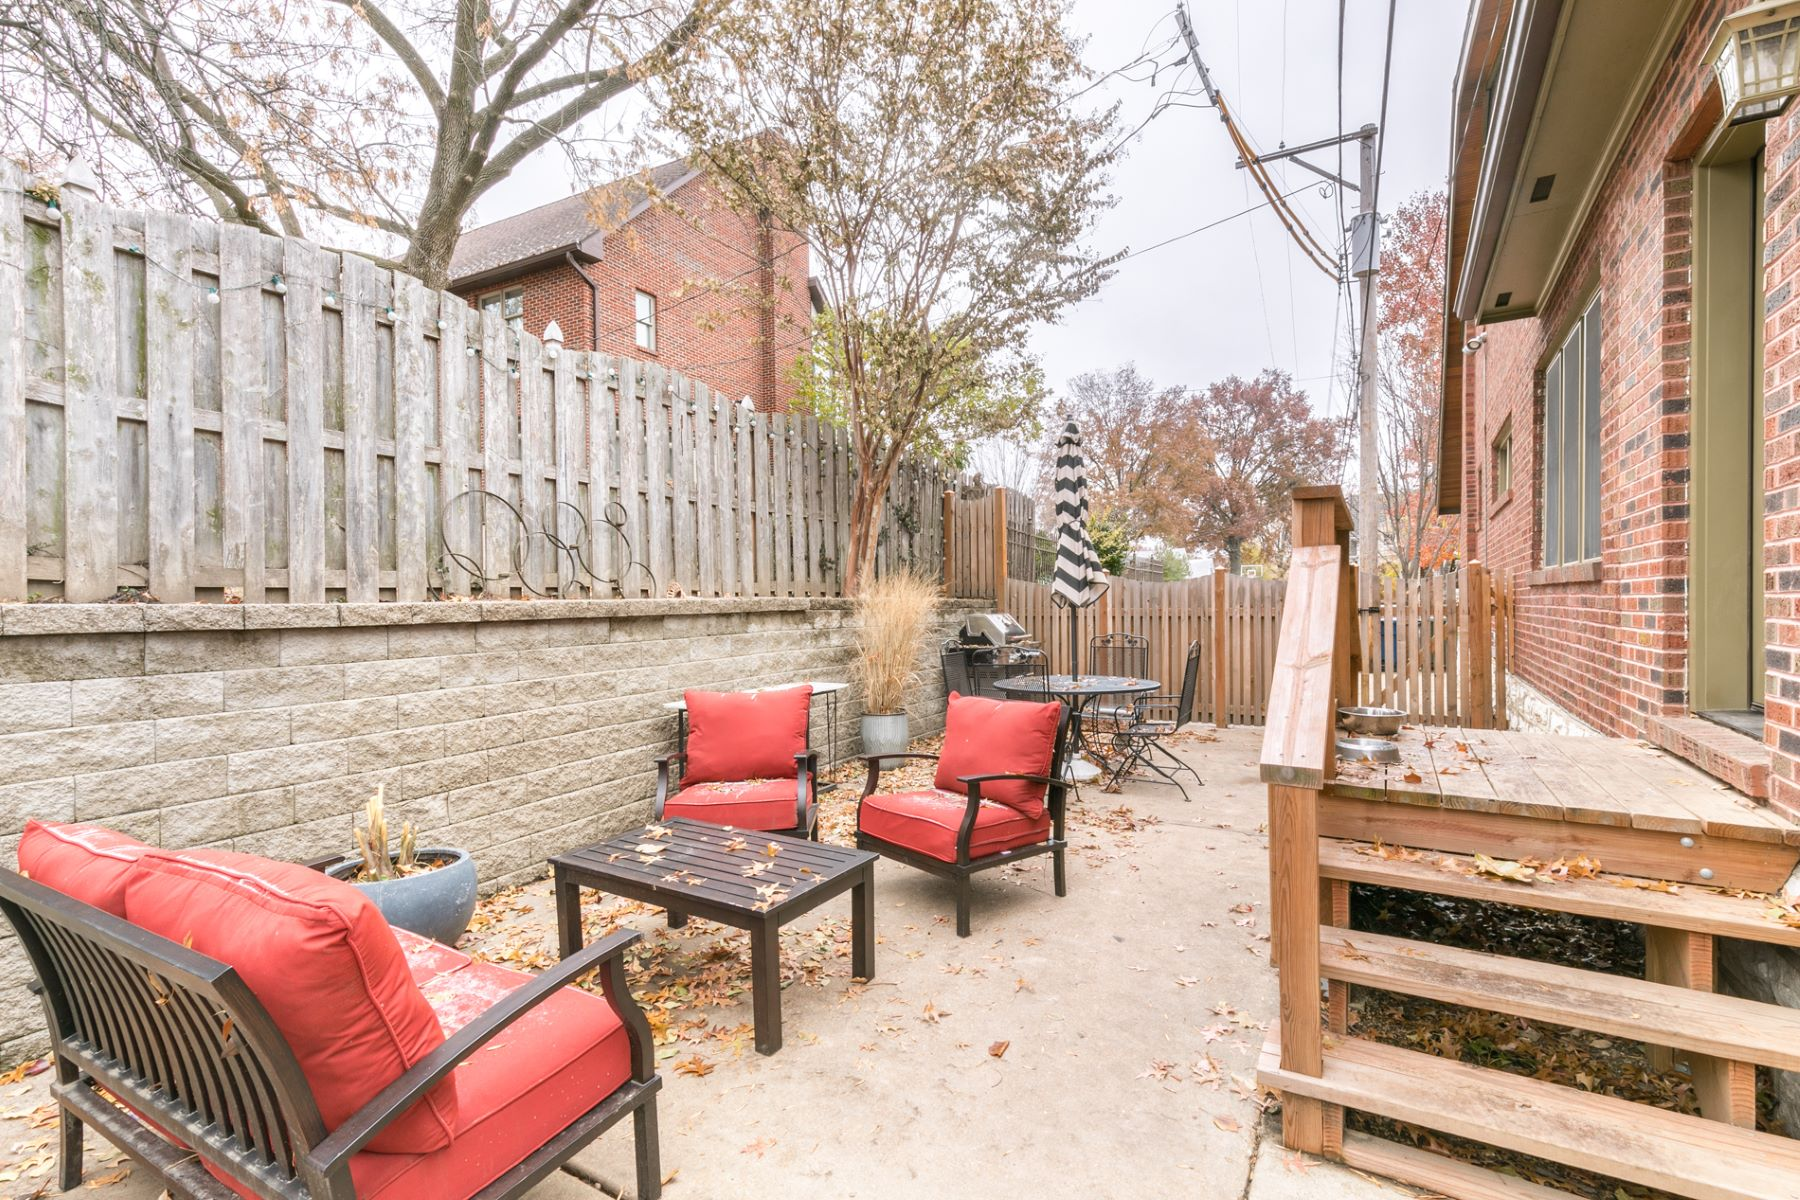 Additional photo for property listing at Lile Ave 7730 Lile Ave St. Louis, Missouri 63117 United States